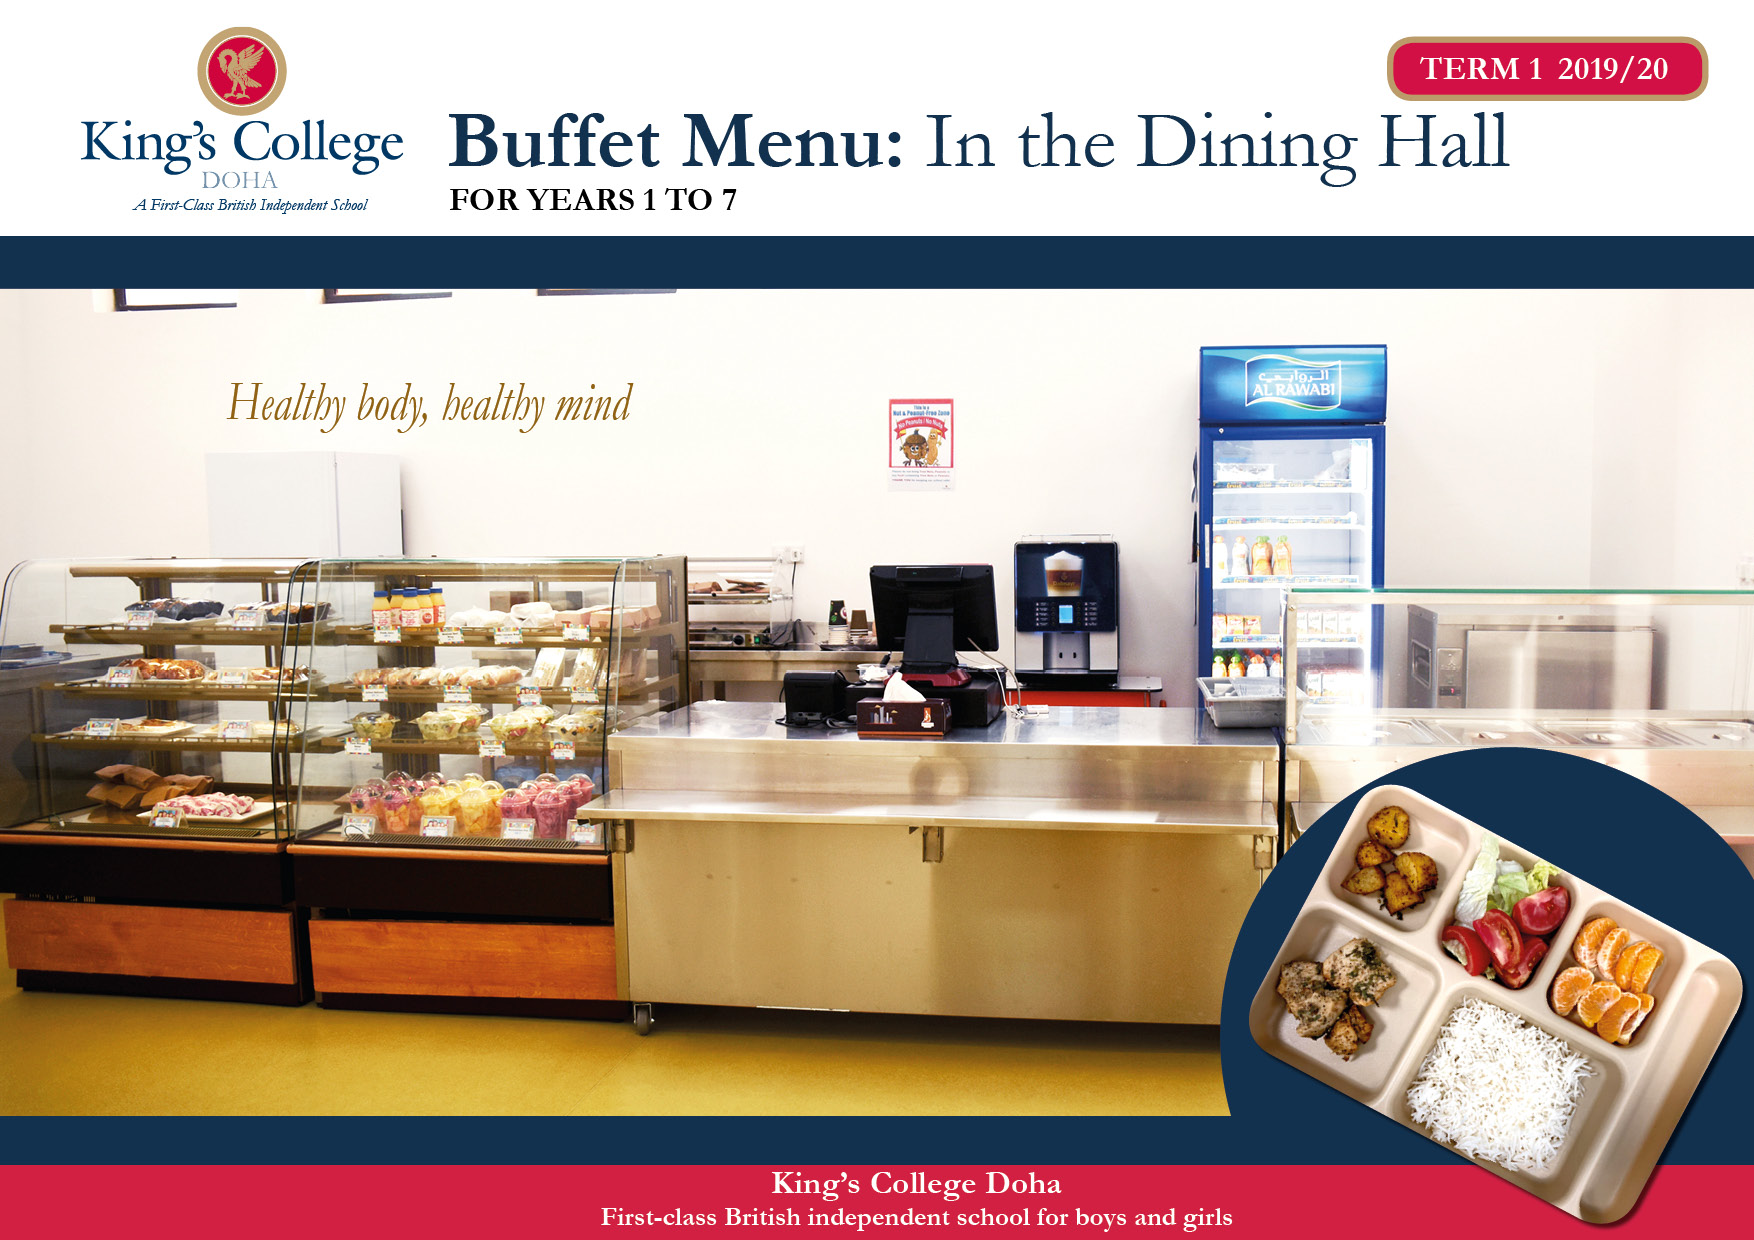 Kings College Food menu2 - Catering